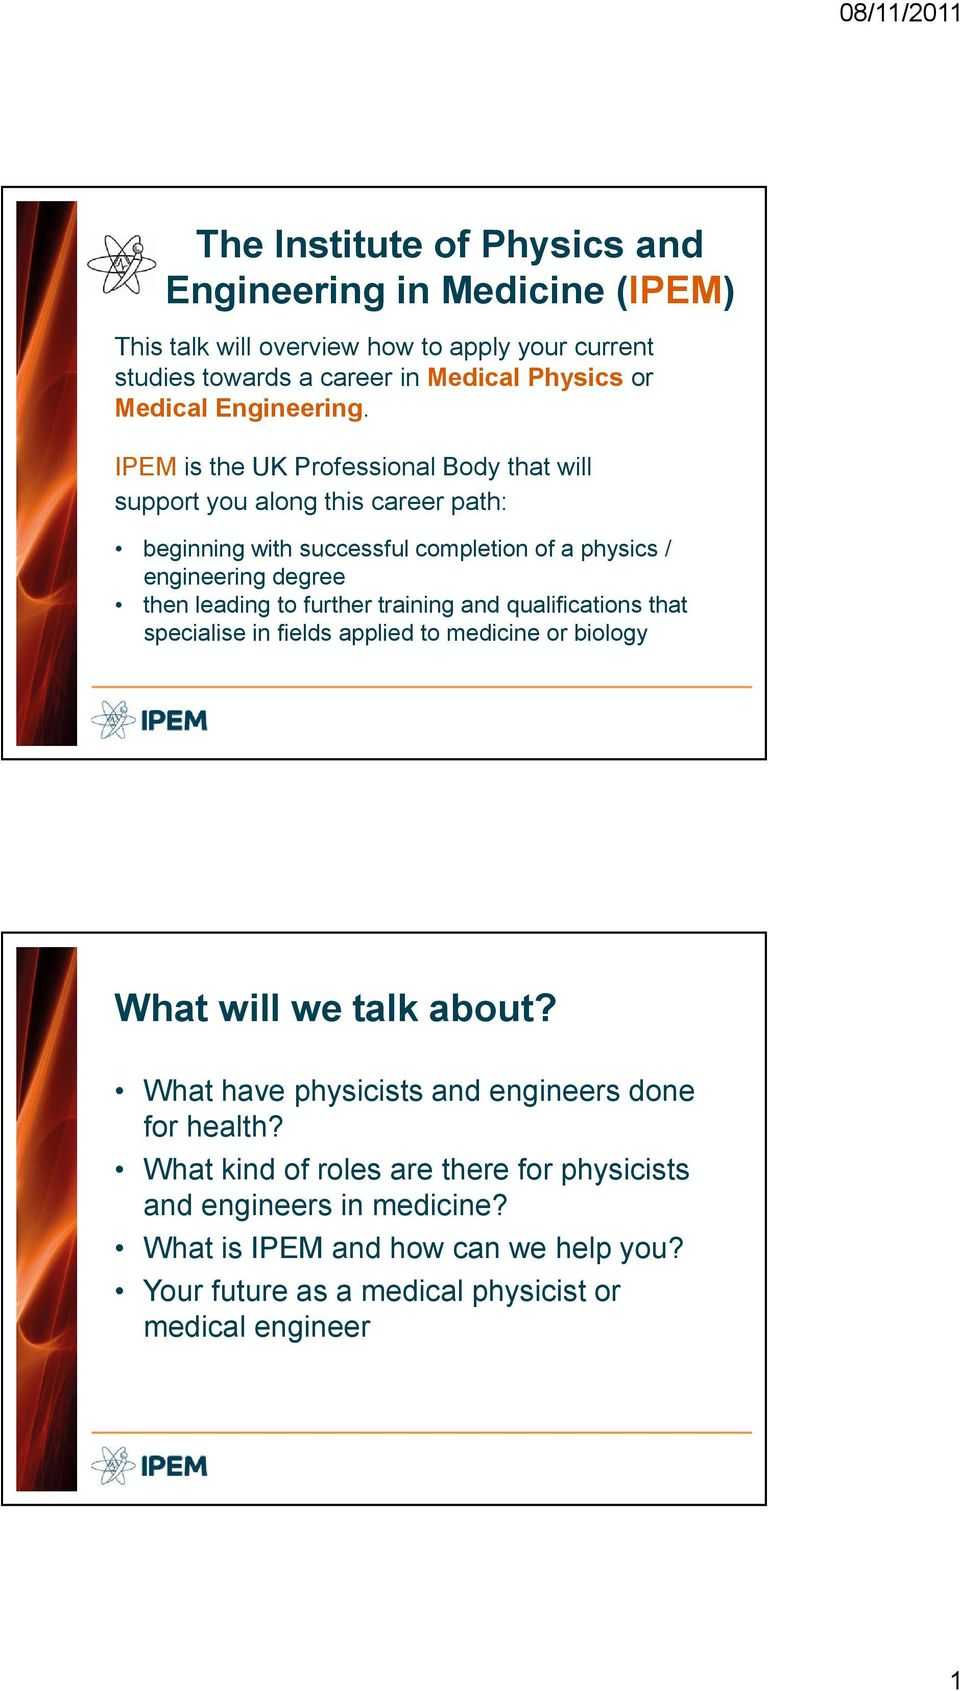 IPEM is the UK Professional Body that will support you along this career path: beginning with successful completion of a physics / engineering degree then leading to